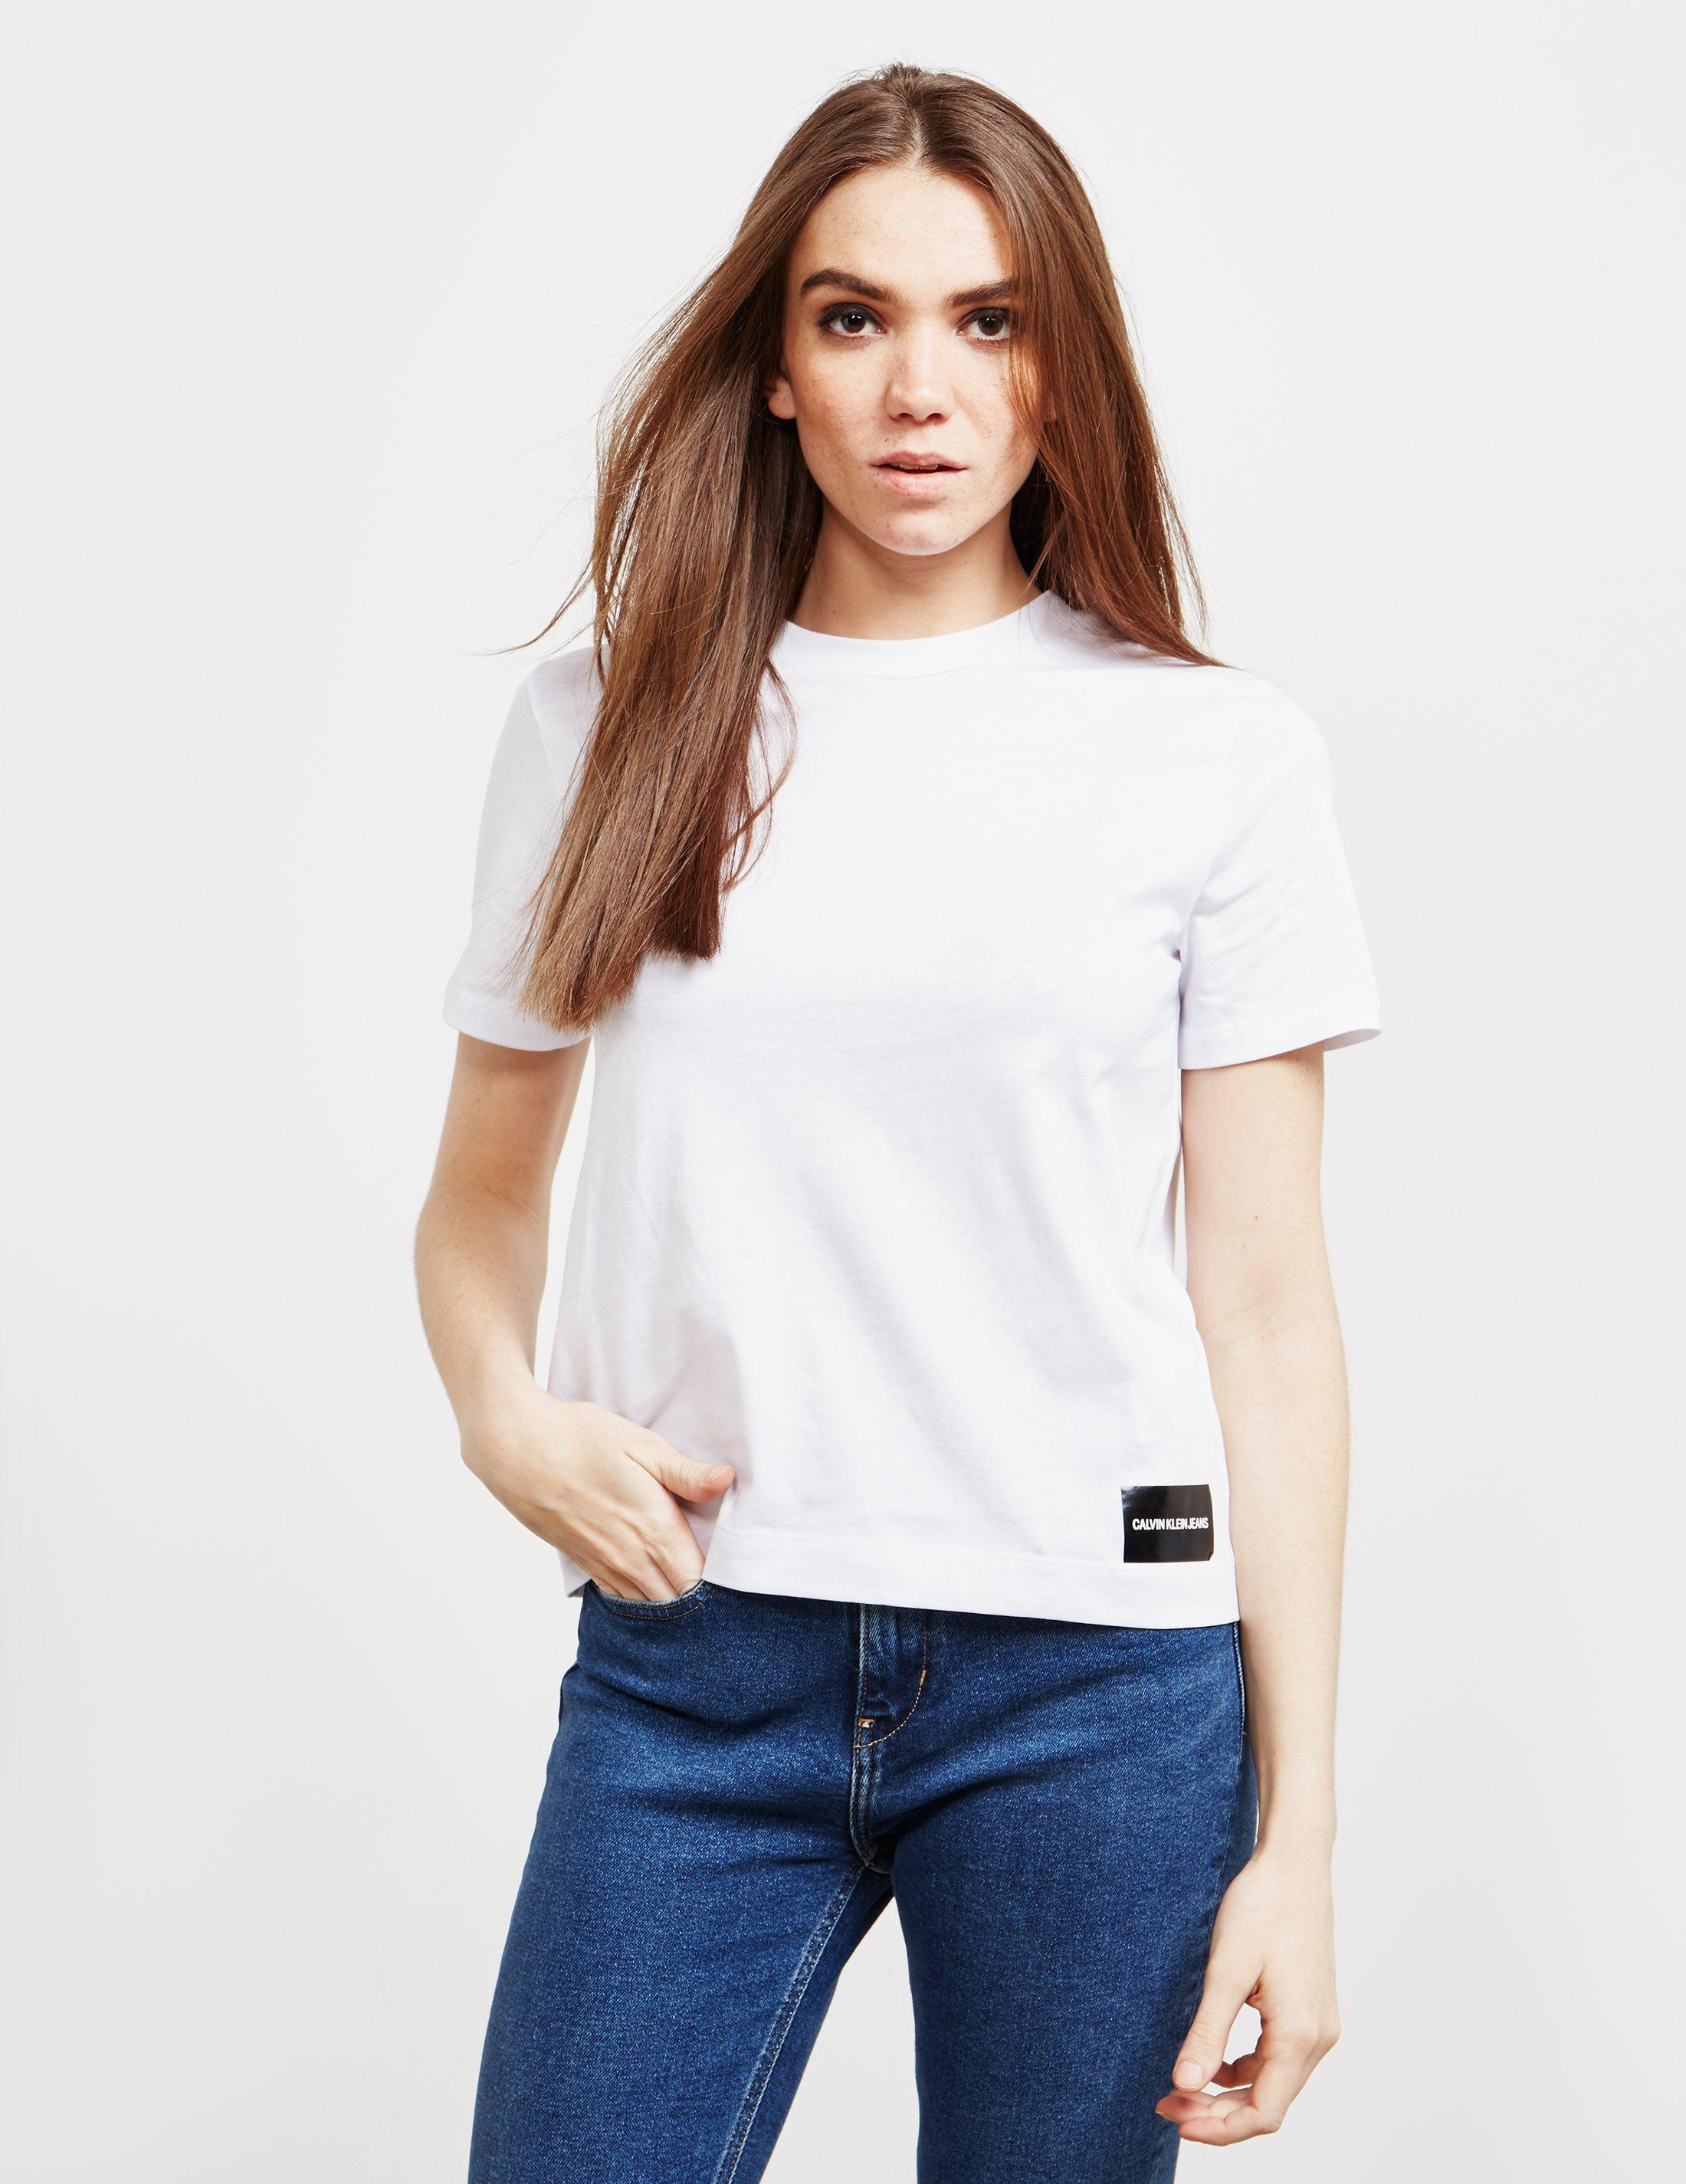 b937d46c3 Lyst - Calvin Klein Womens Core Fit Short Sleeve T-shirt White in White